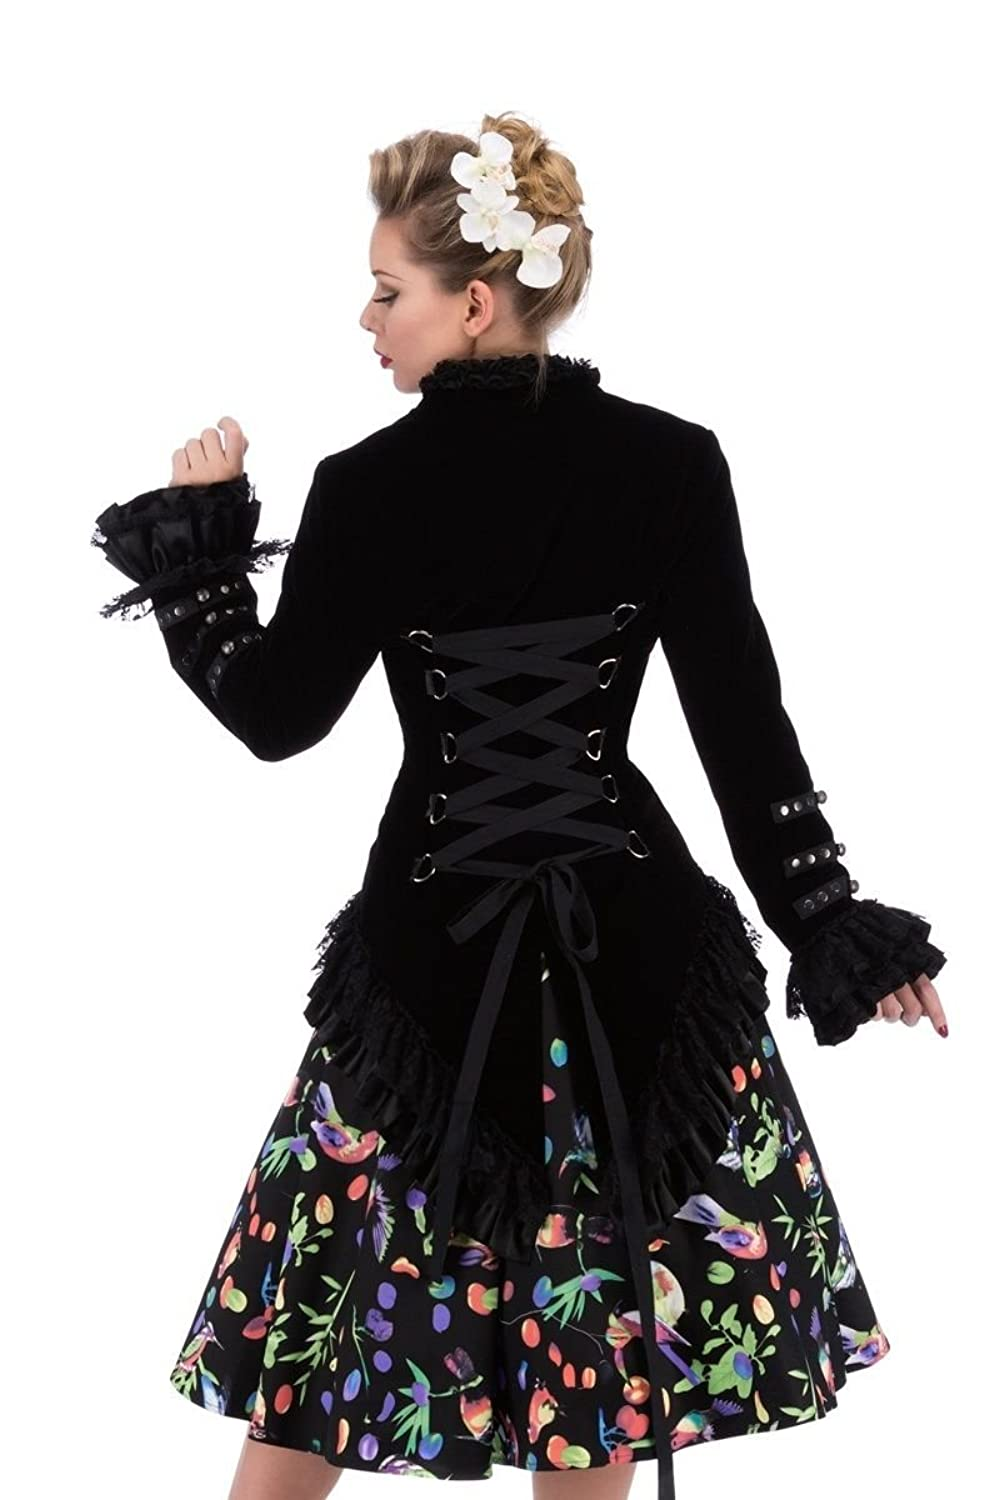 Victorian Jacket, Coat, Ladies Suits | Edwardian, 1910s, WW1 Hearts & Roses Womens Velvet Victorian Steampunk Tailcoat Corset Back £47.98 AT vintagedancer.com